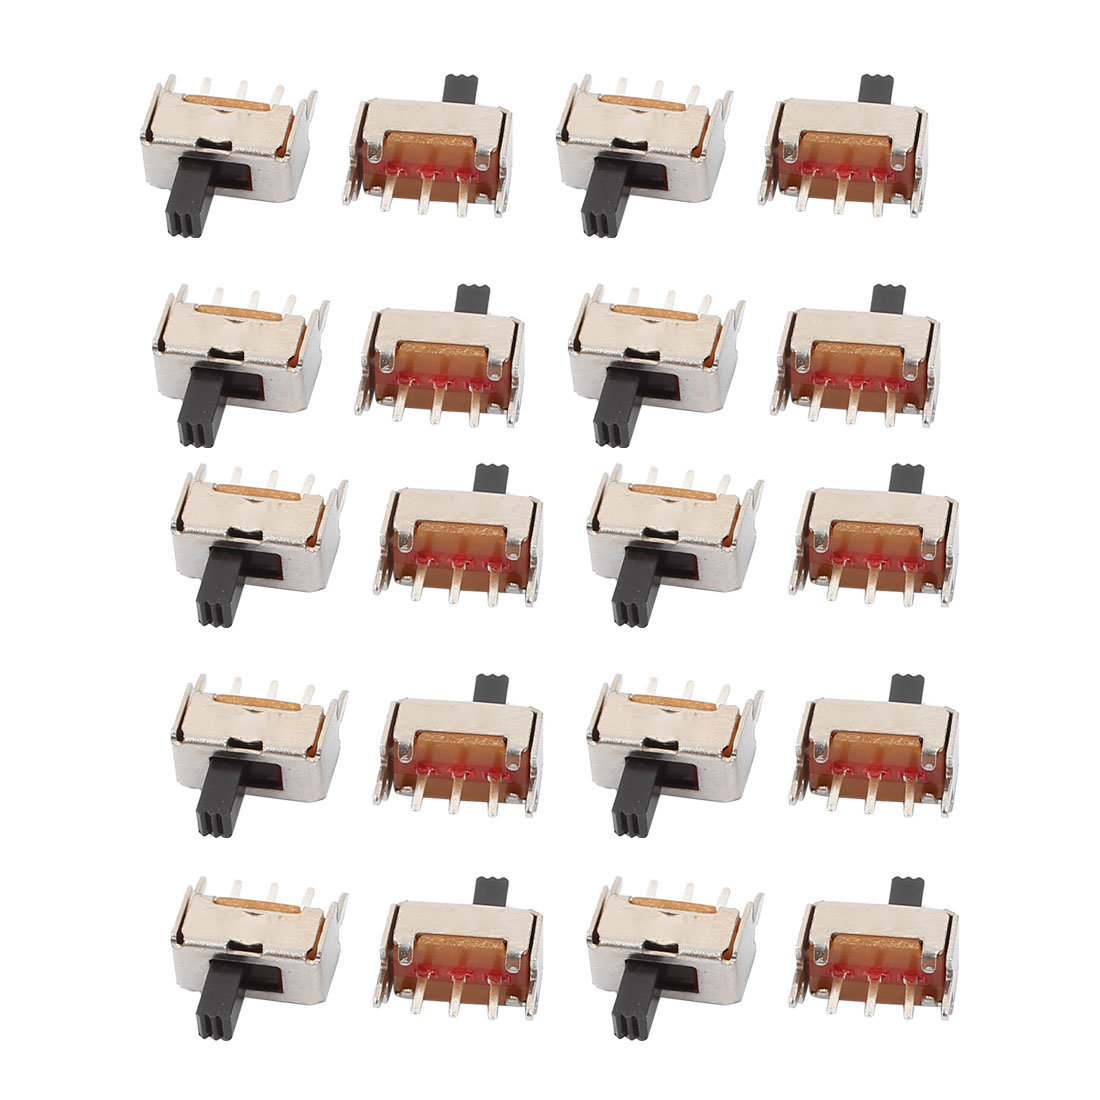 20Pcs DC50V 0.5A 2 Position 3P SPDT Mini Slide Switch Latching Toy Switch